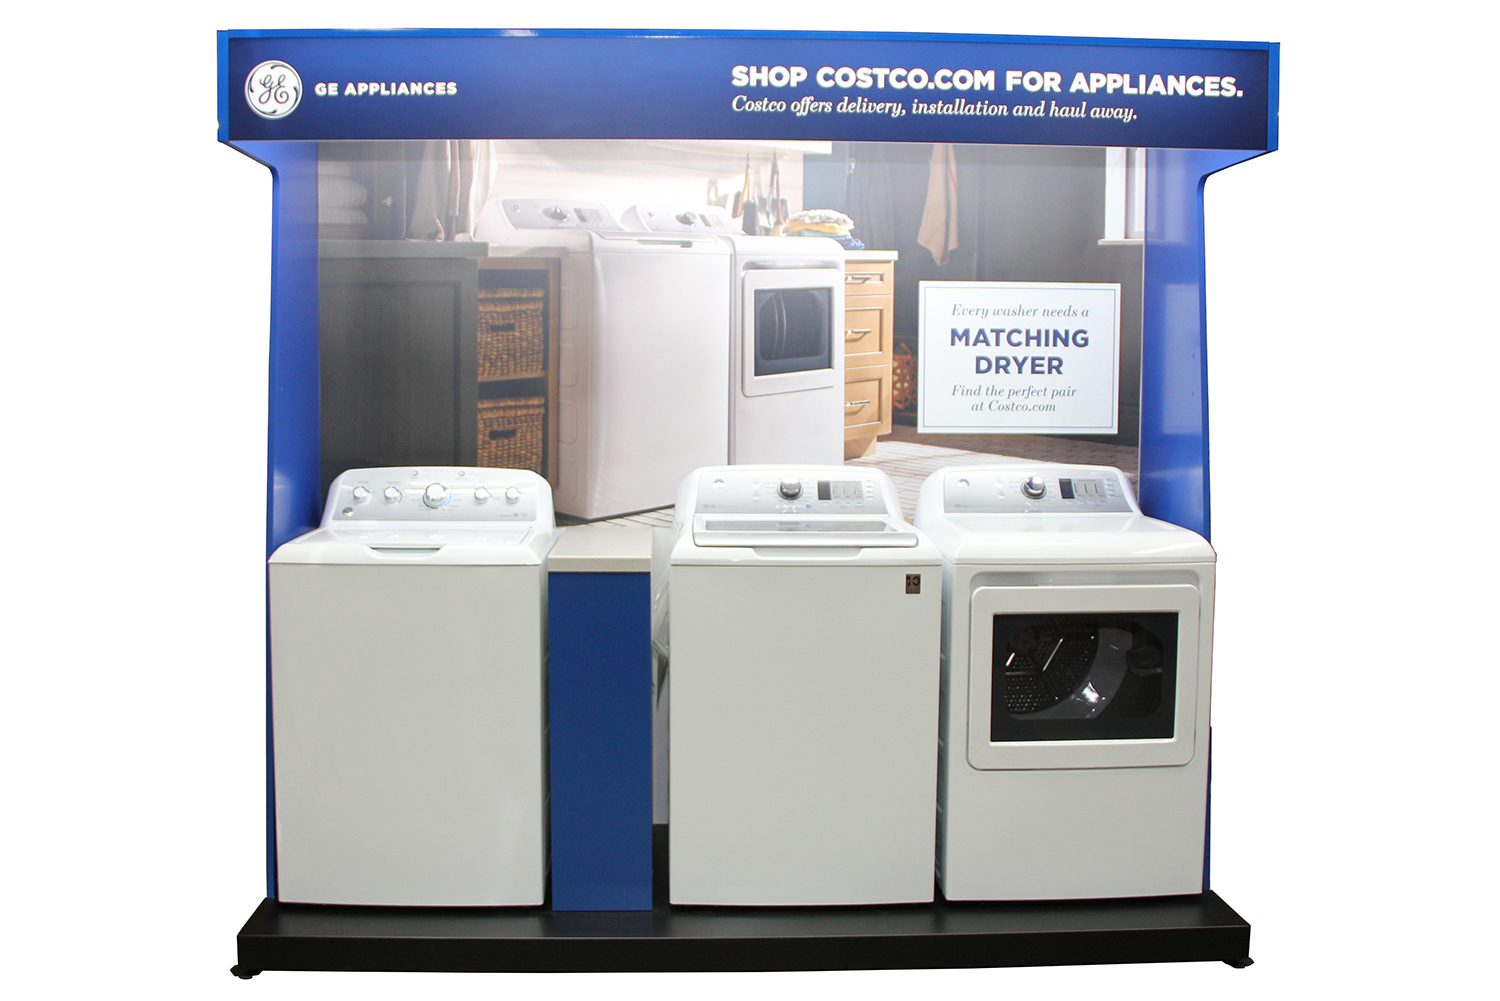 ge appliances laundry and kitchen appliances now sold at costco